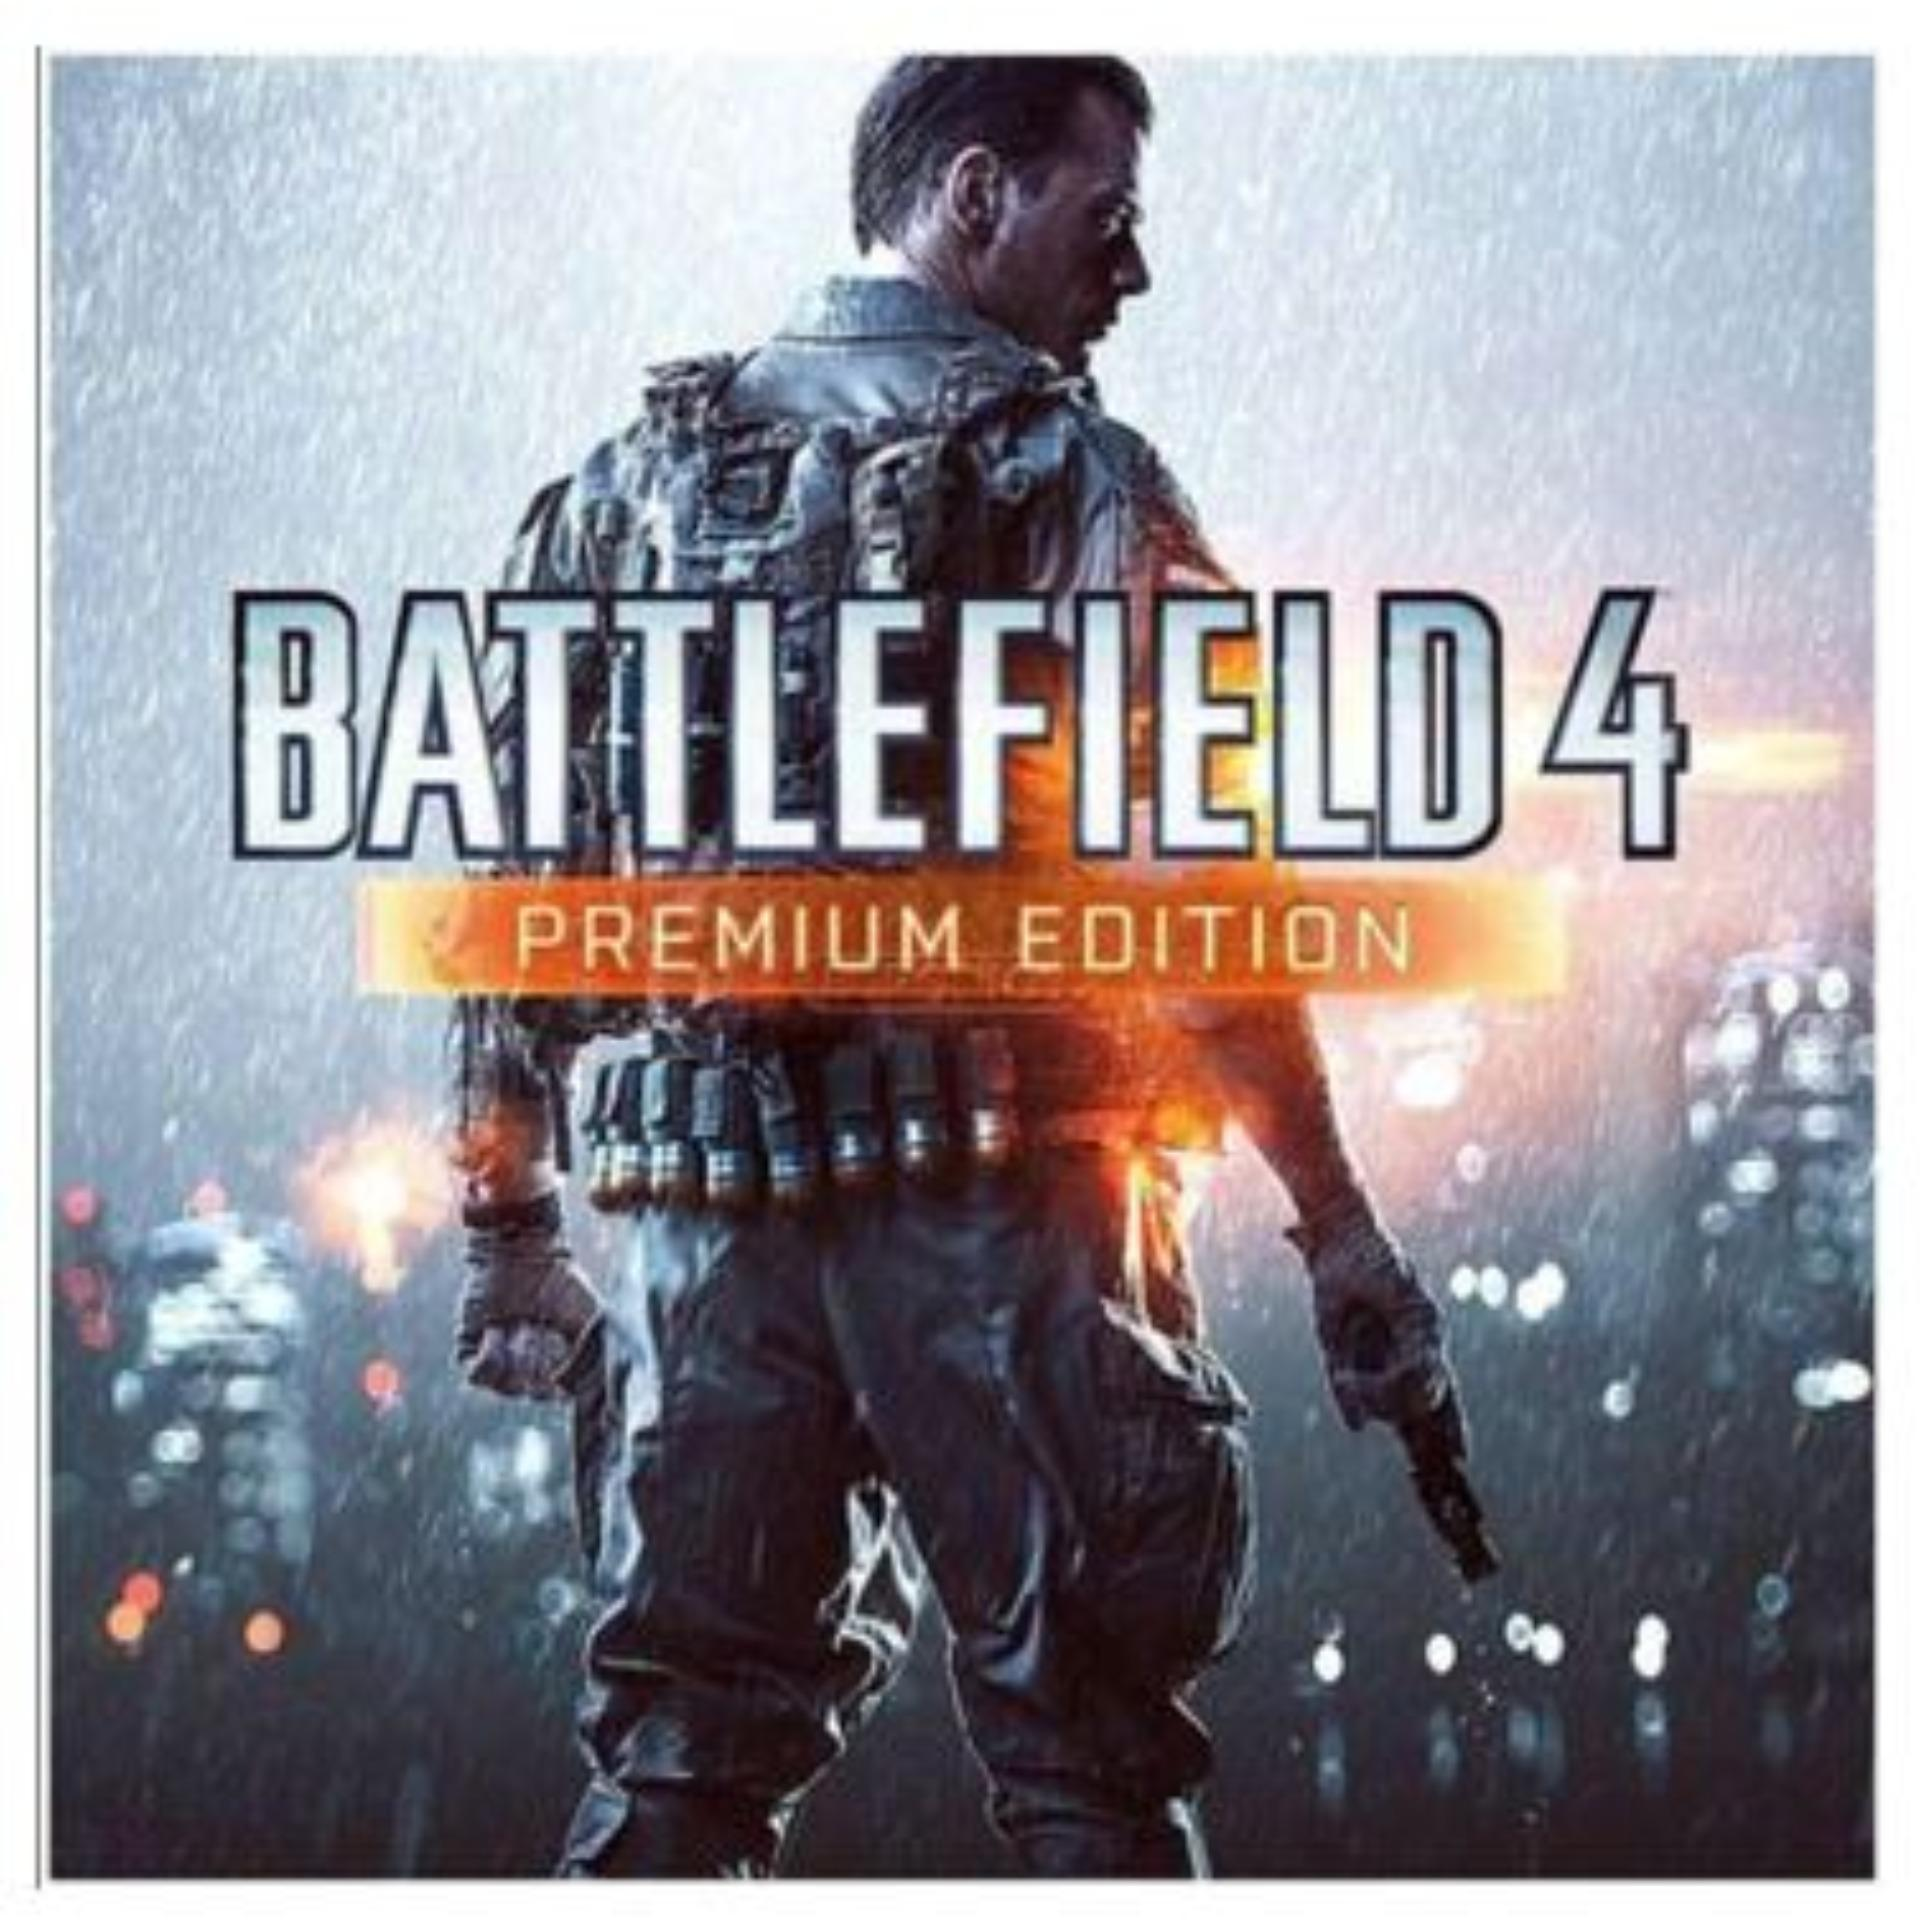 Battlefield 1 + PREMIUM PASS Digital Download / Read Description